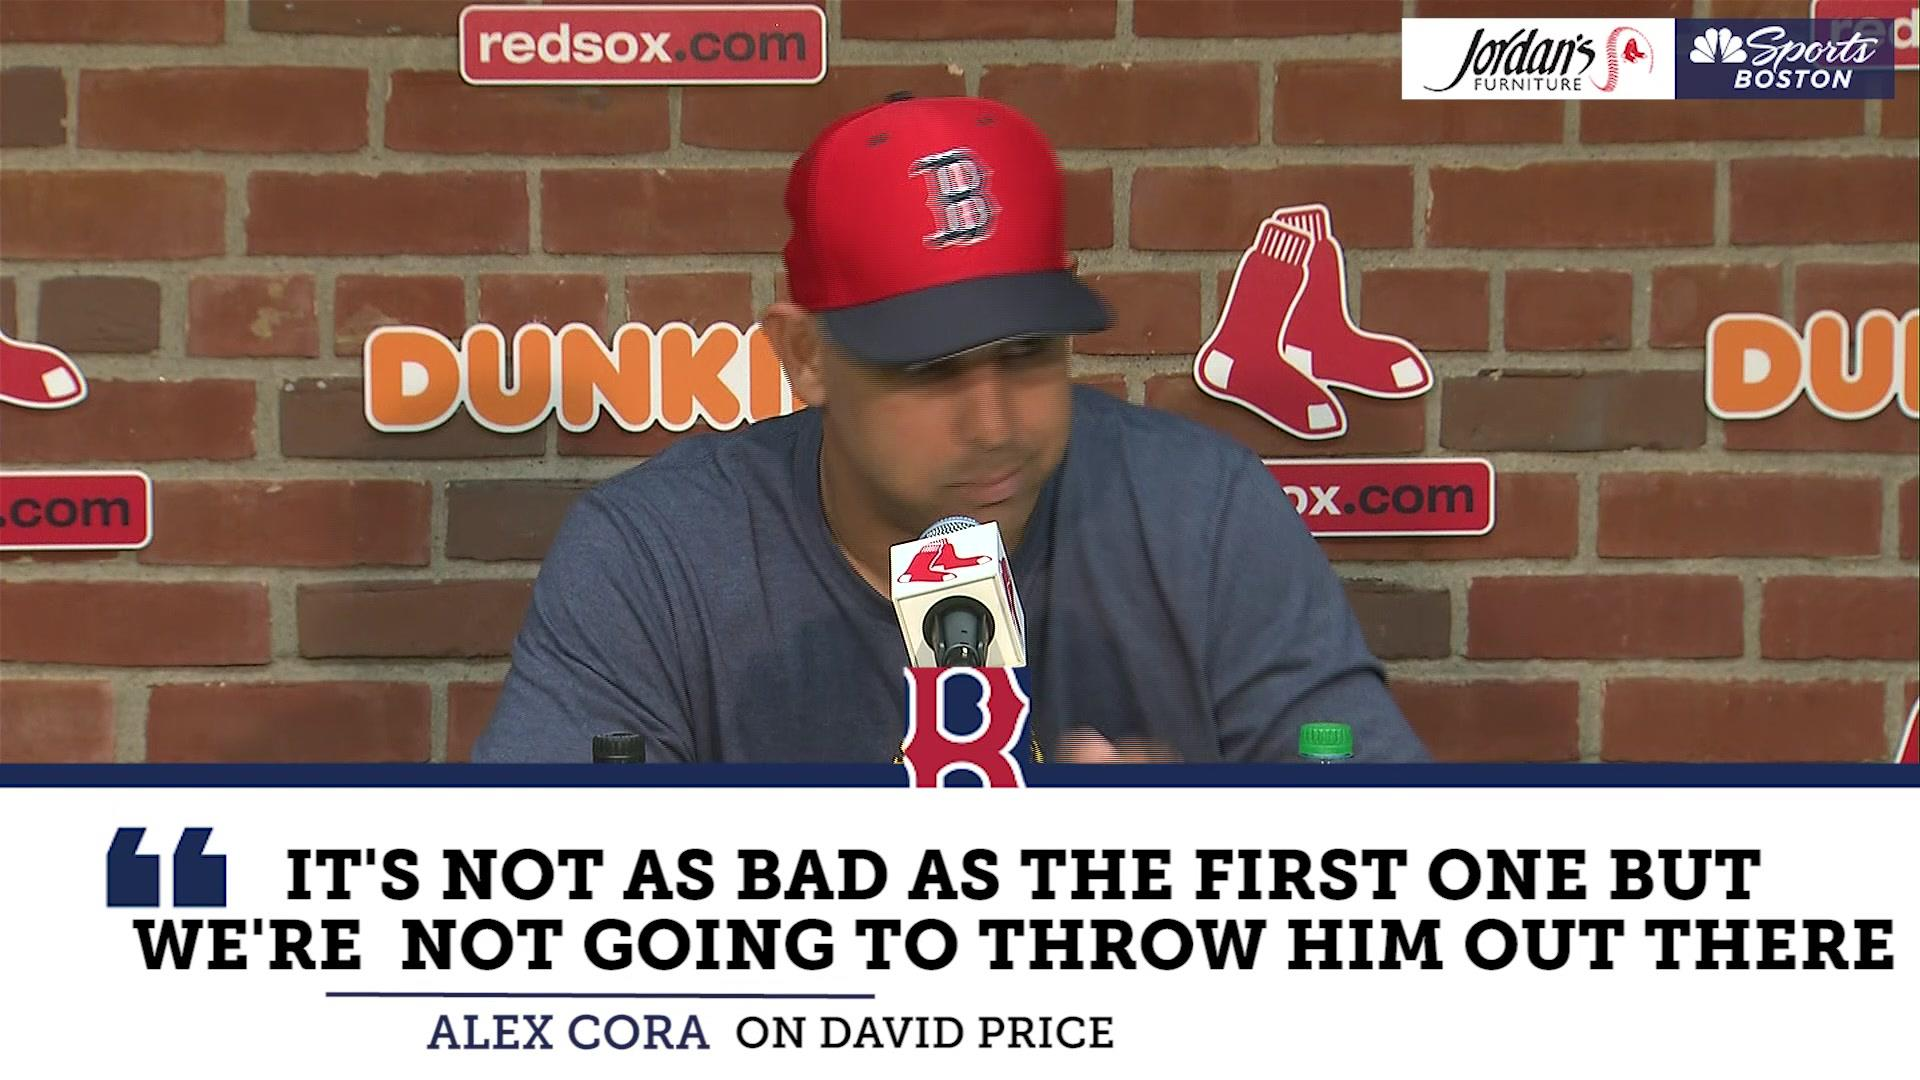 David Price suffers setback after bullpen session